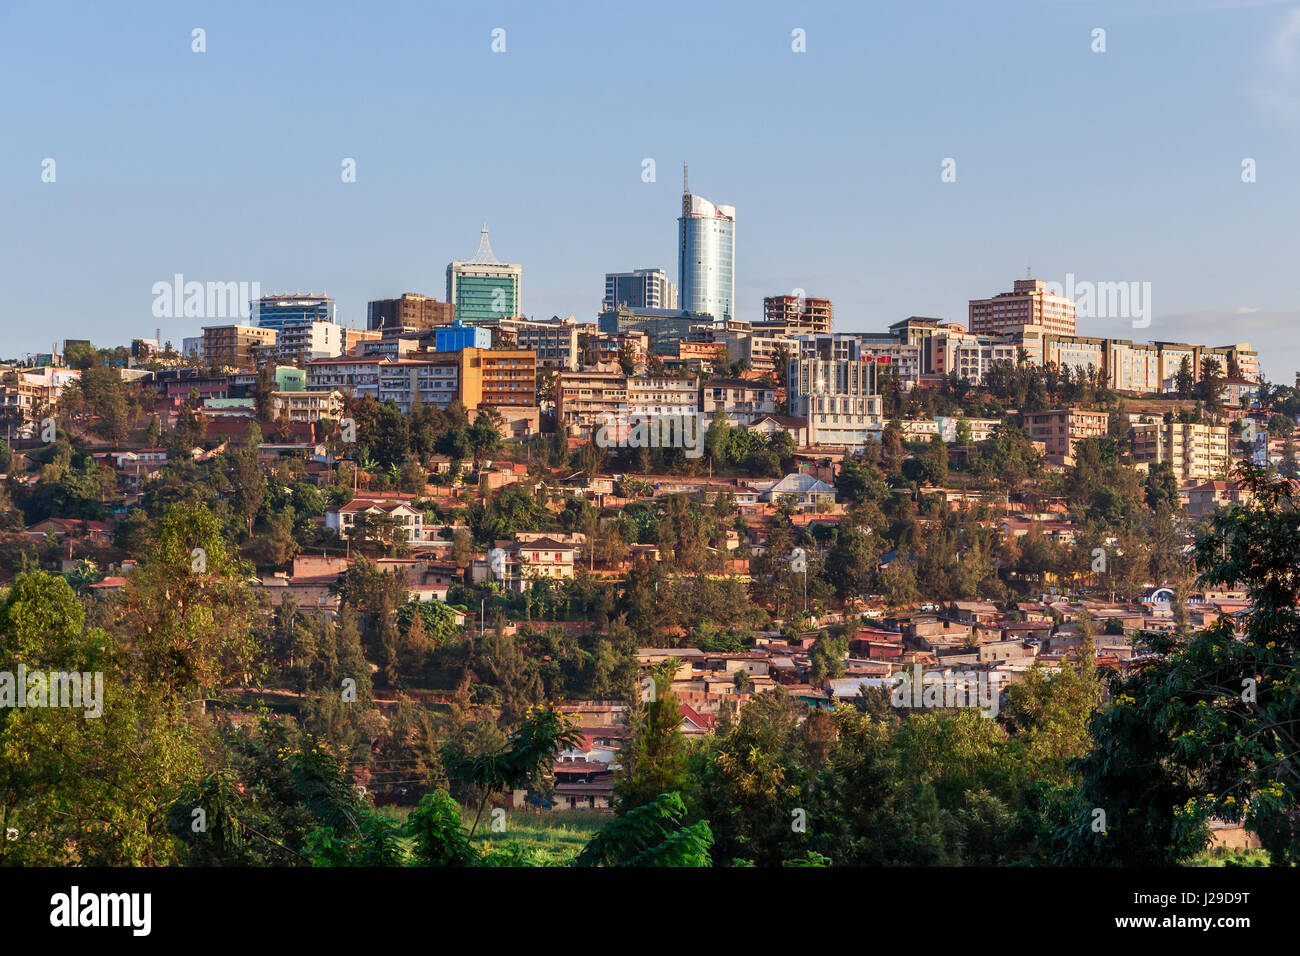 Panoramic view at the city bussiness district of Kigali, Rwanda, 2016 - Stock Image